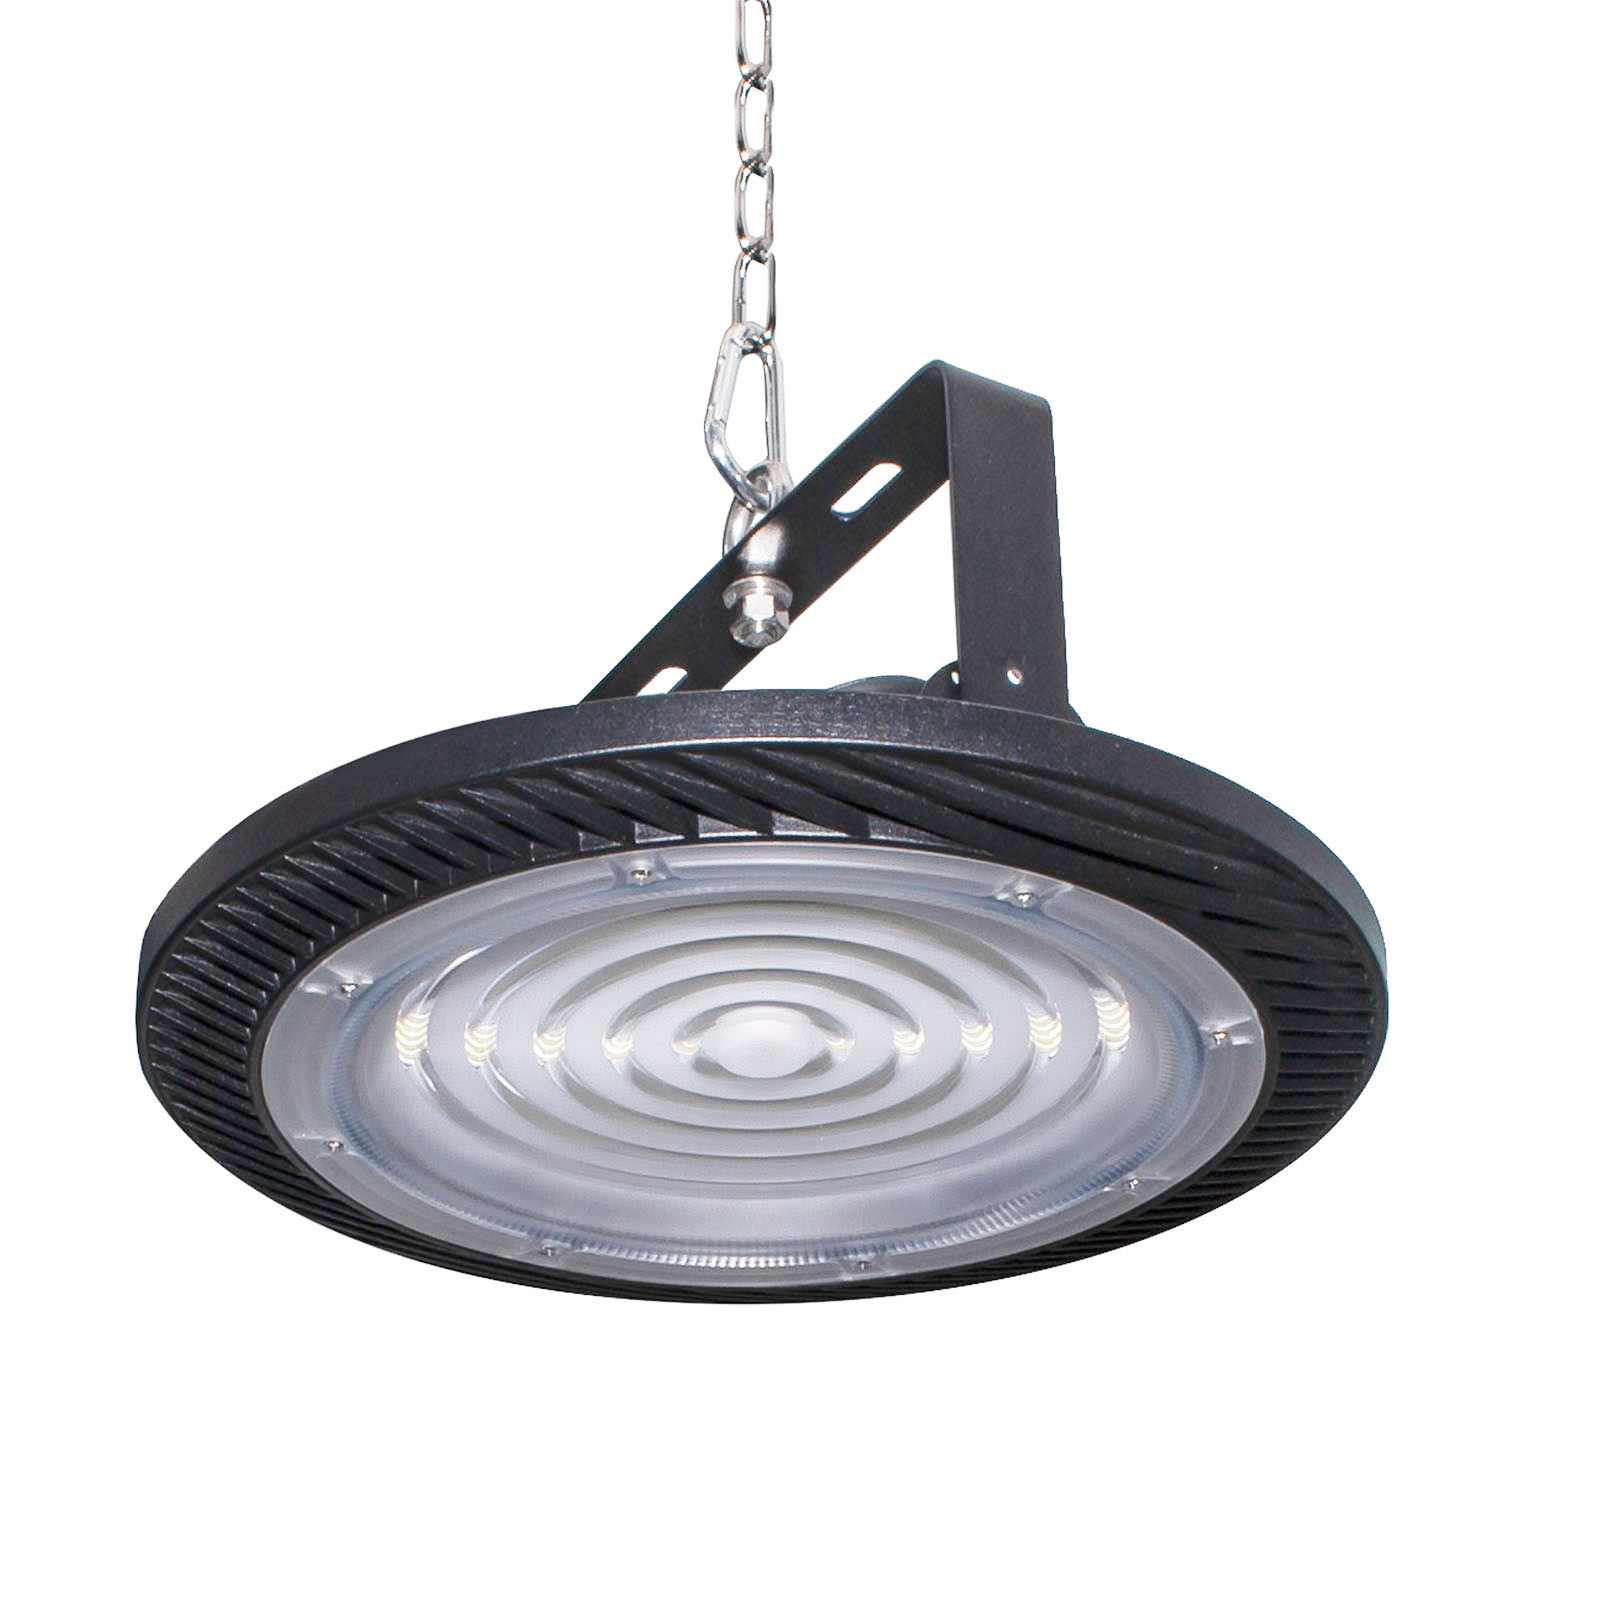 Faro LED industrial suspension pendant 200W light shed 24000lm 6500K IP65